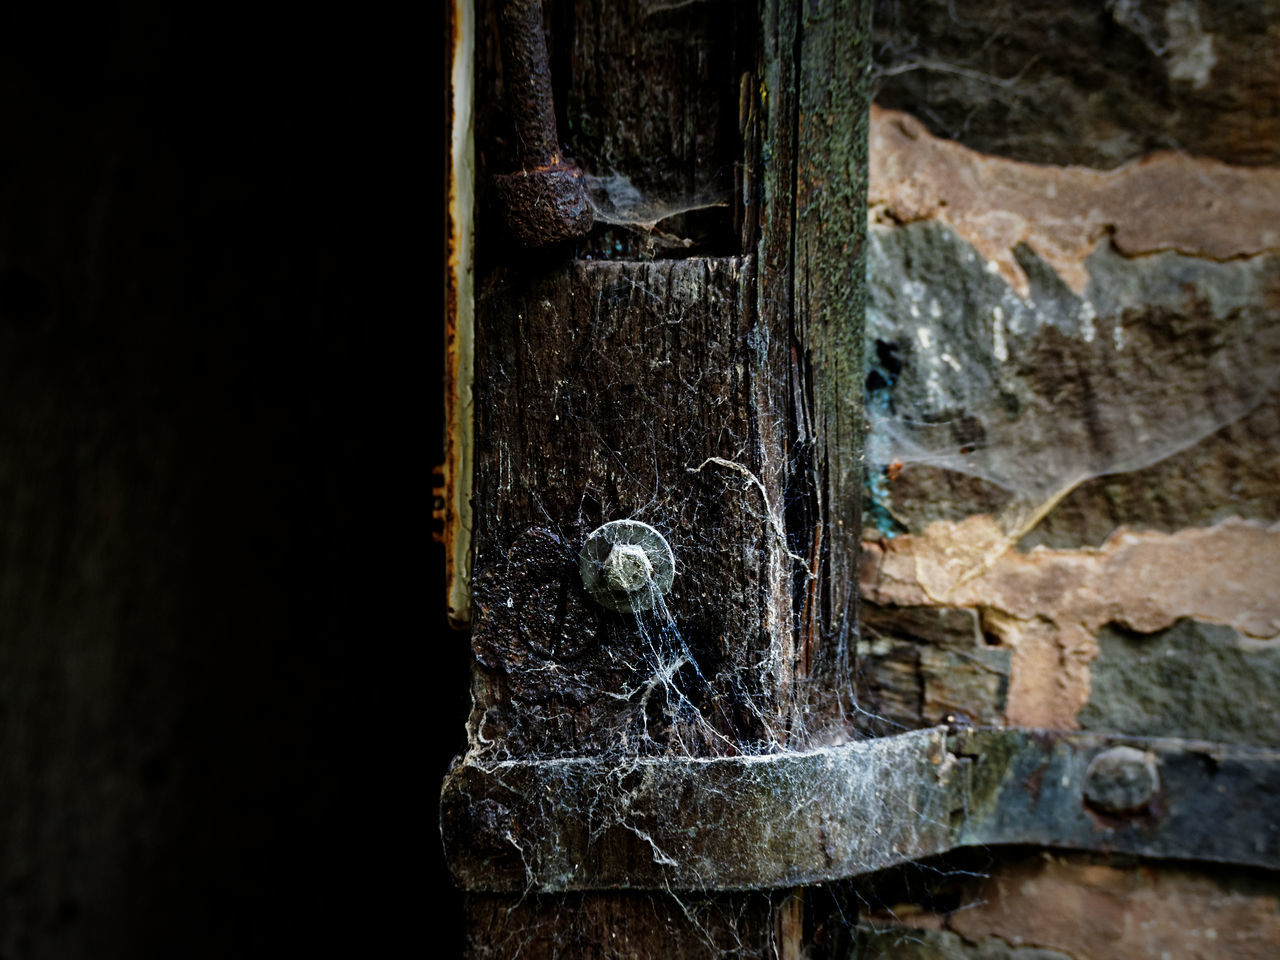 Country Life Bricks Brickstones Cobweb Contryhouse Contryside Country Life Folk Old Rust Texture Vintage Wall Wood Claudetheen